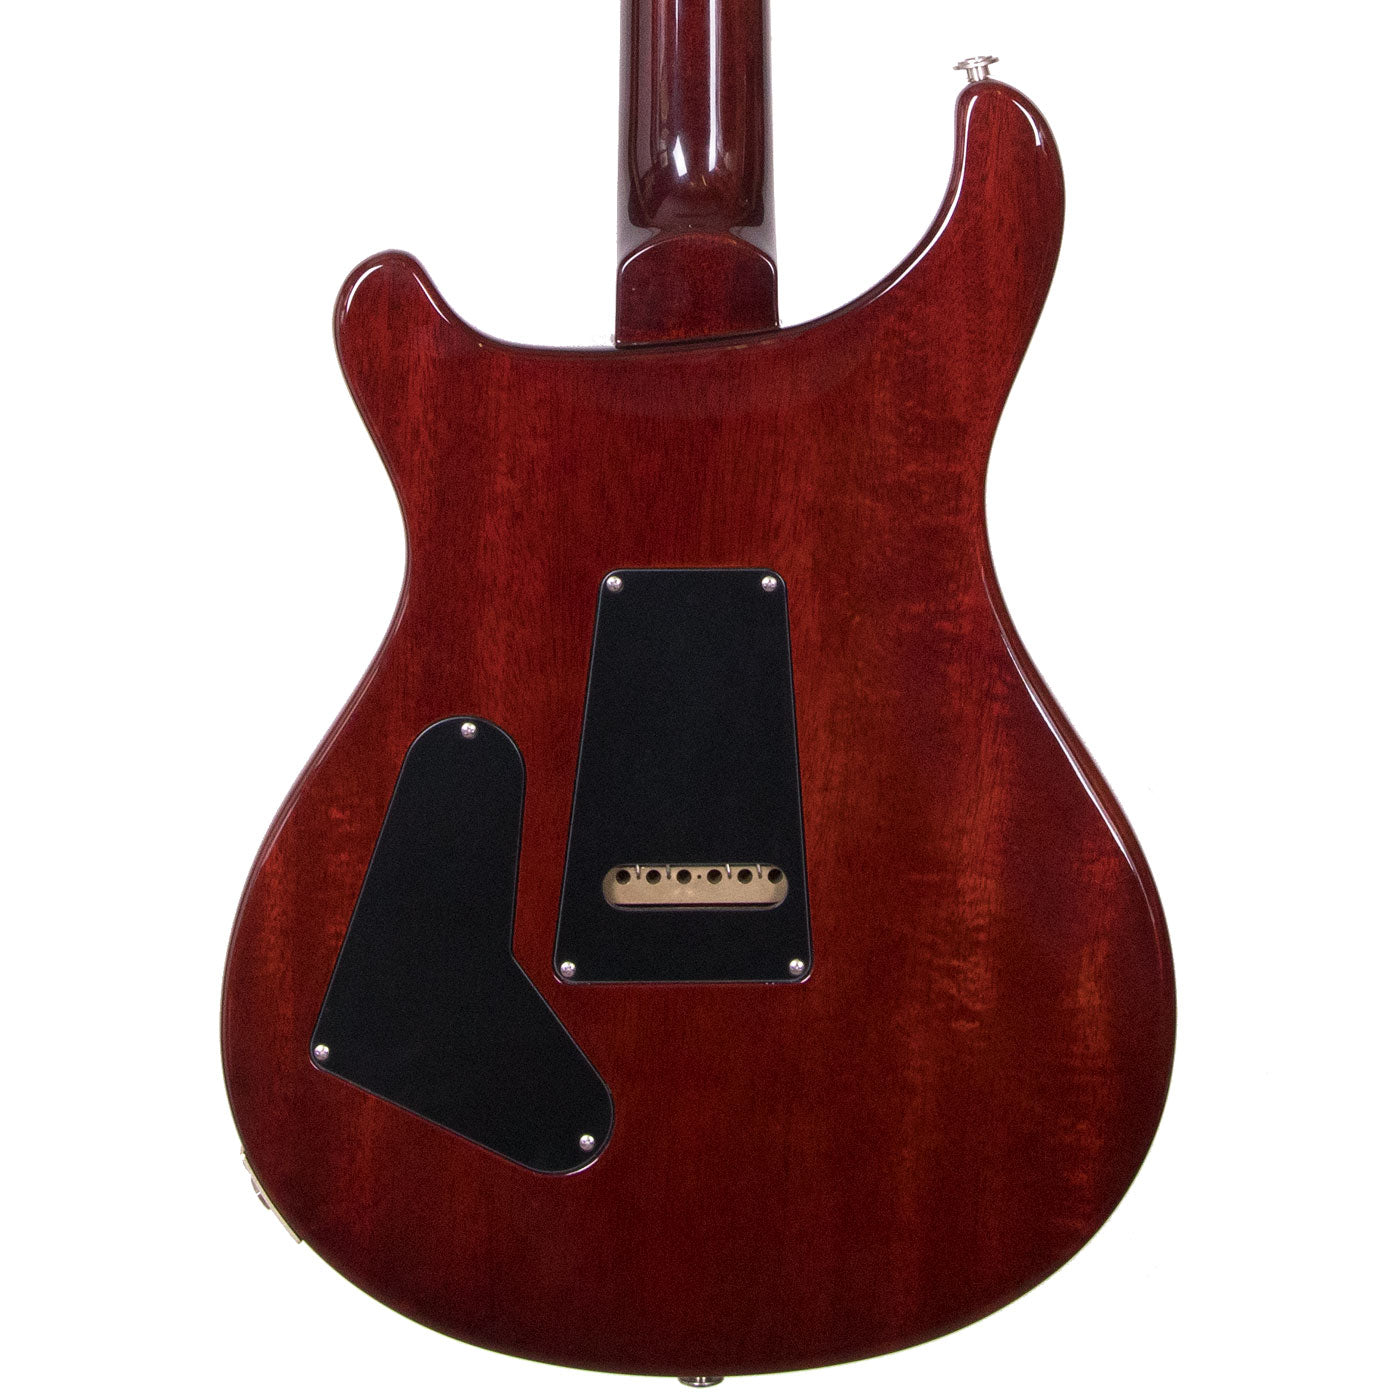 2010 PRS Custom 24 25th Anniversary Ten Top - Fire Red Burst